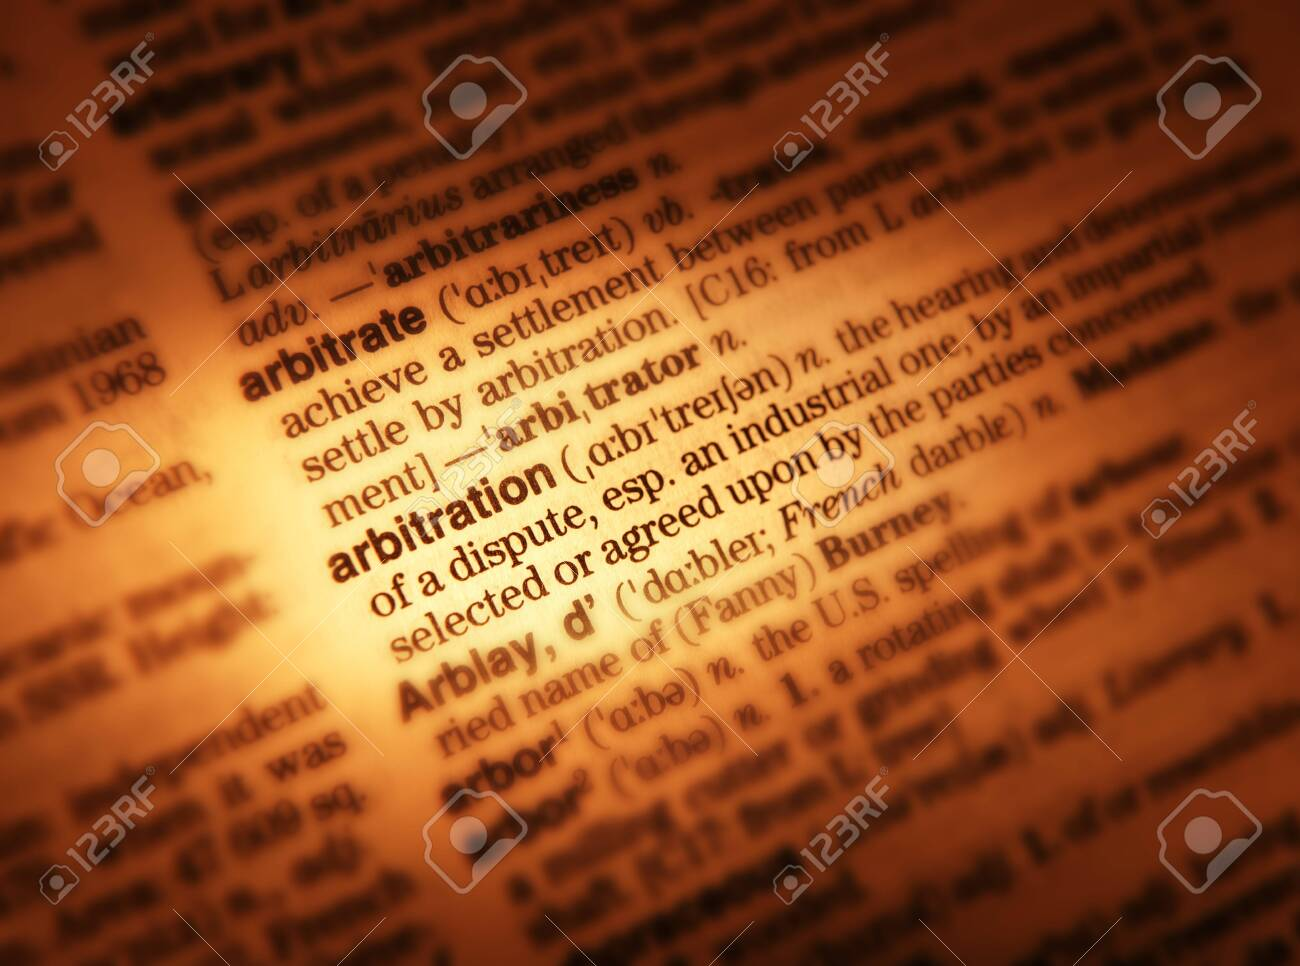 Close up of dictionary showing definition of the word arbitration